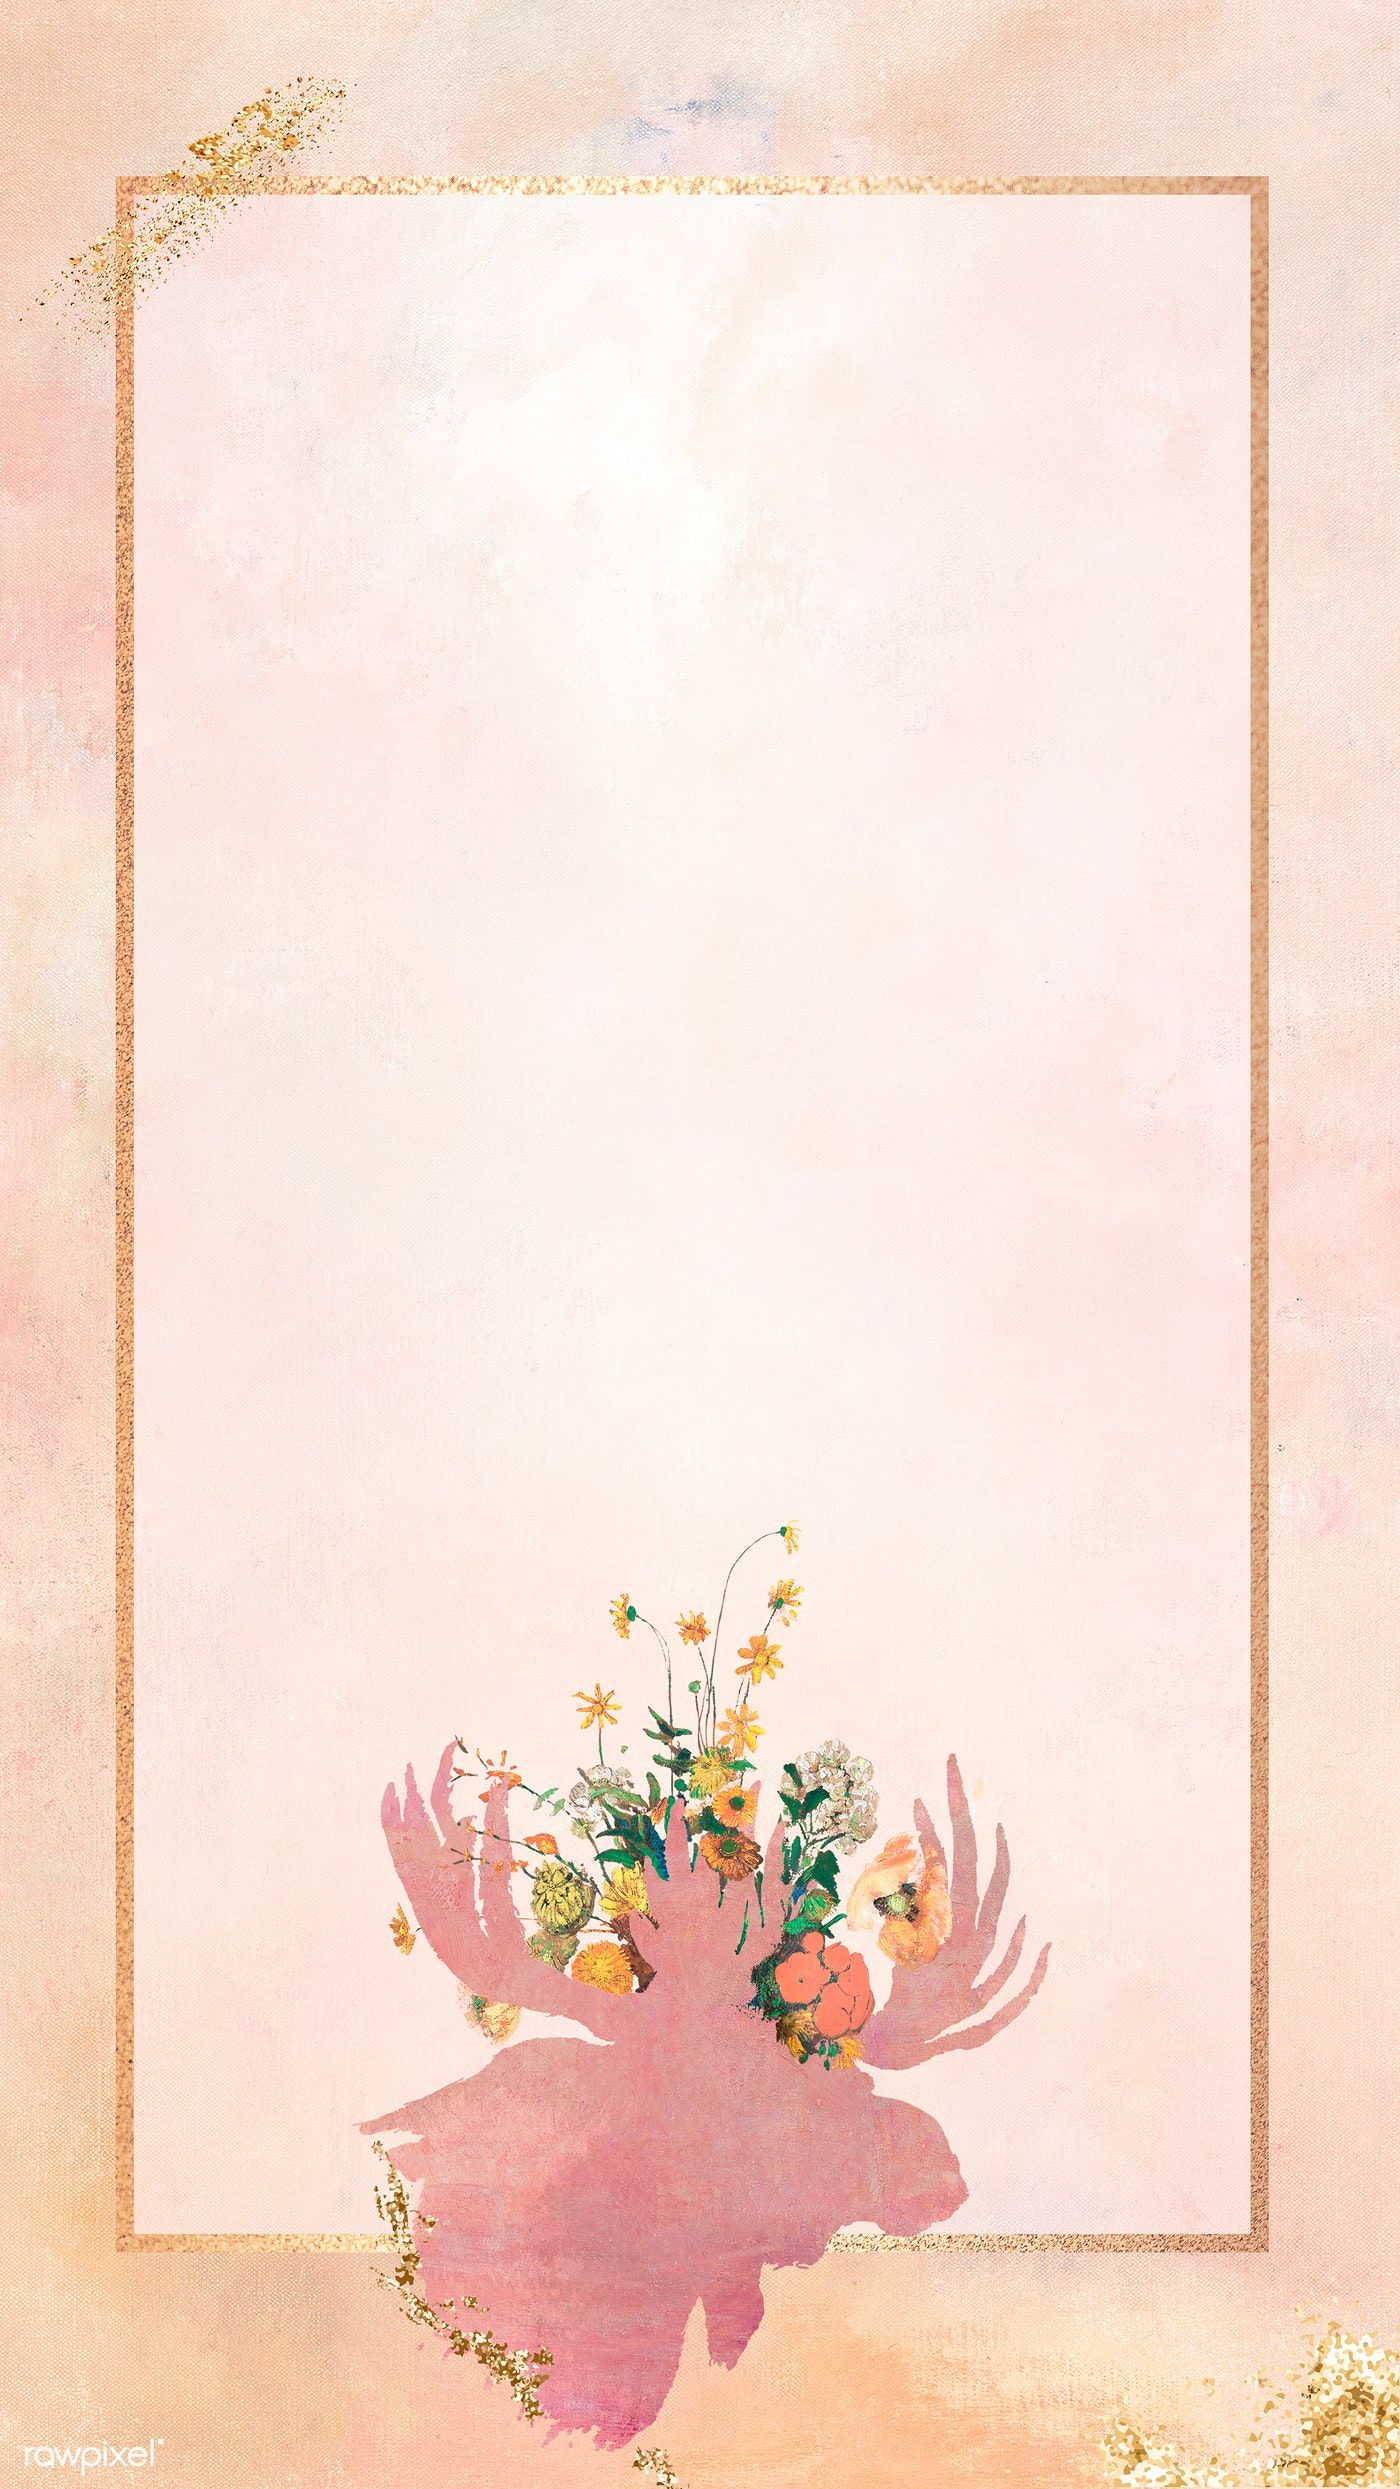 Download Premium Illustration Of Rectangle Frame With A Moose Head Silhouette Painting Flower Background Wallpaper Instagram Wallpaper